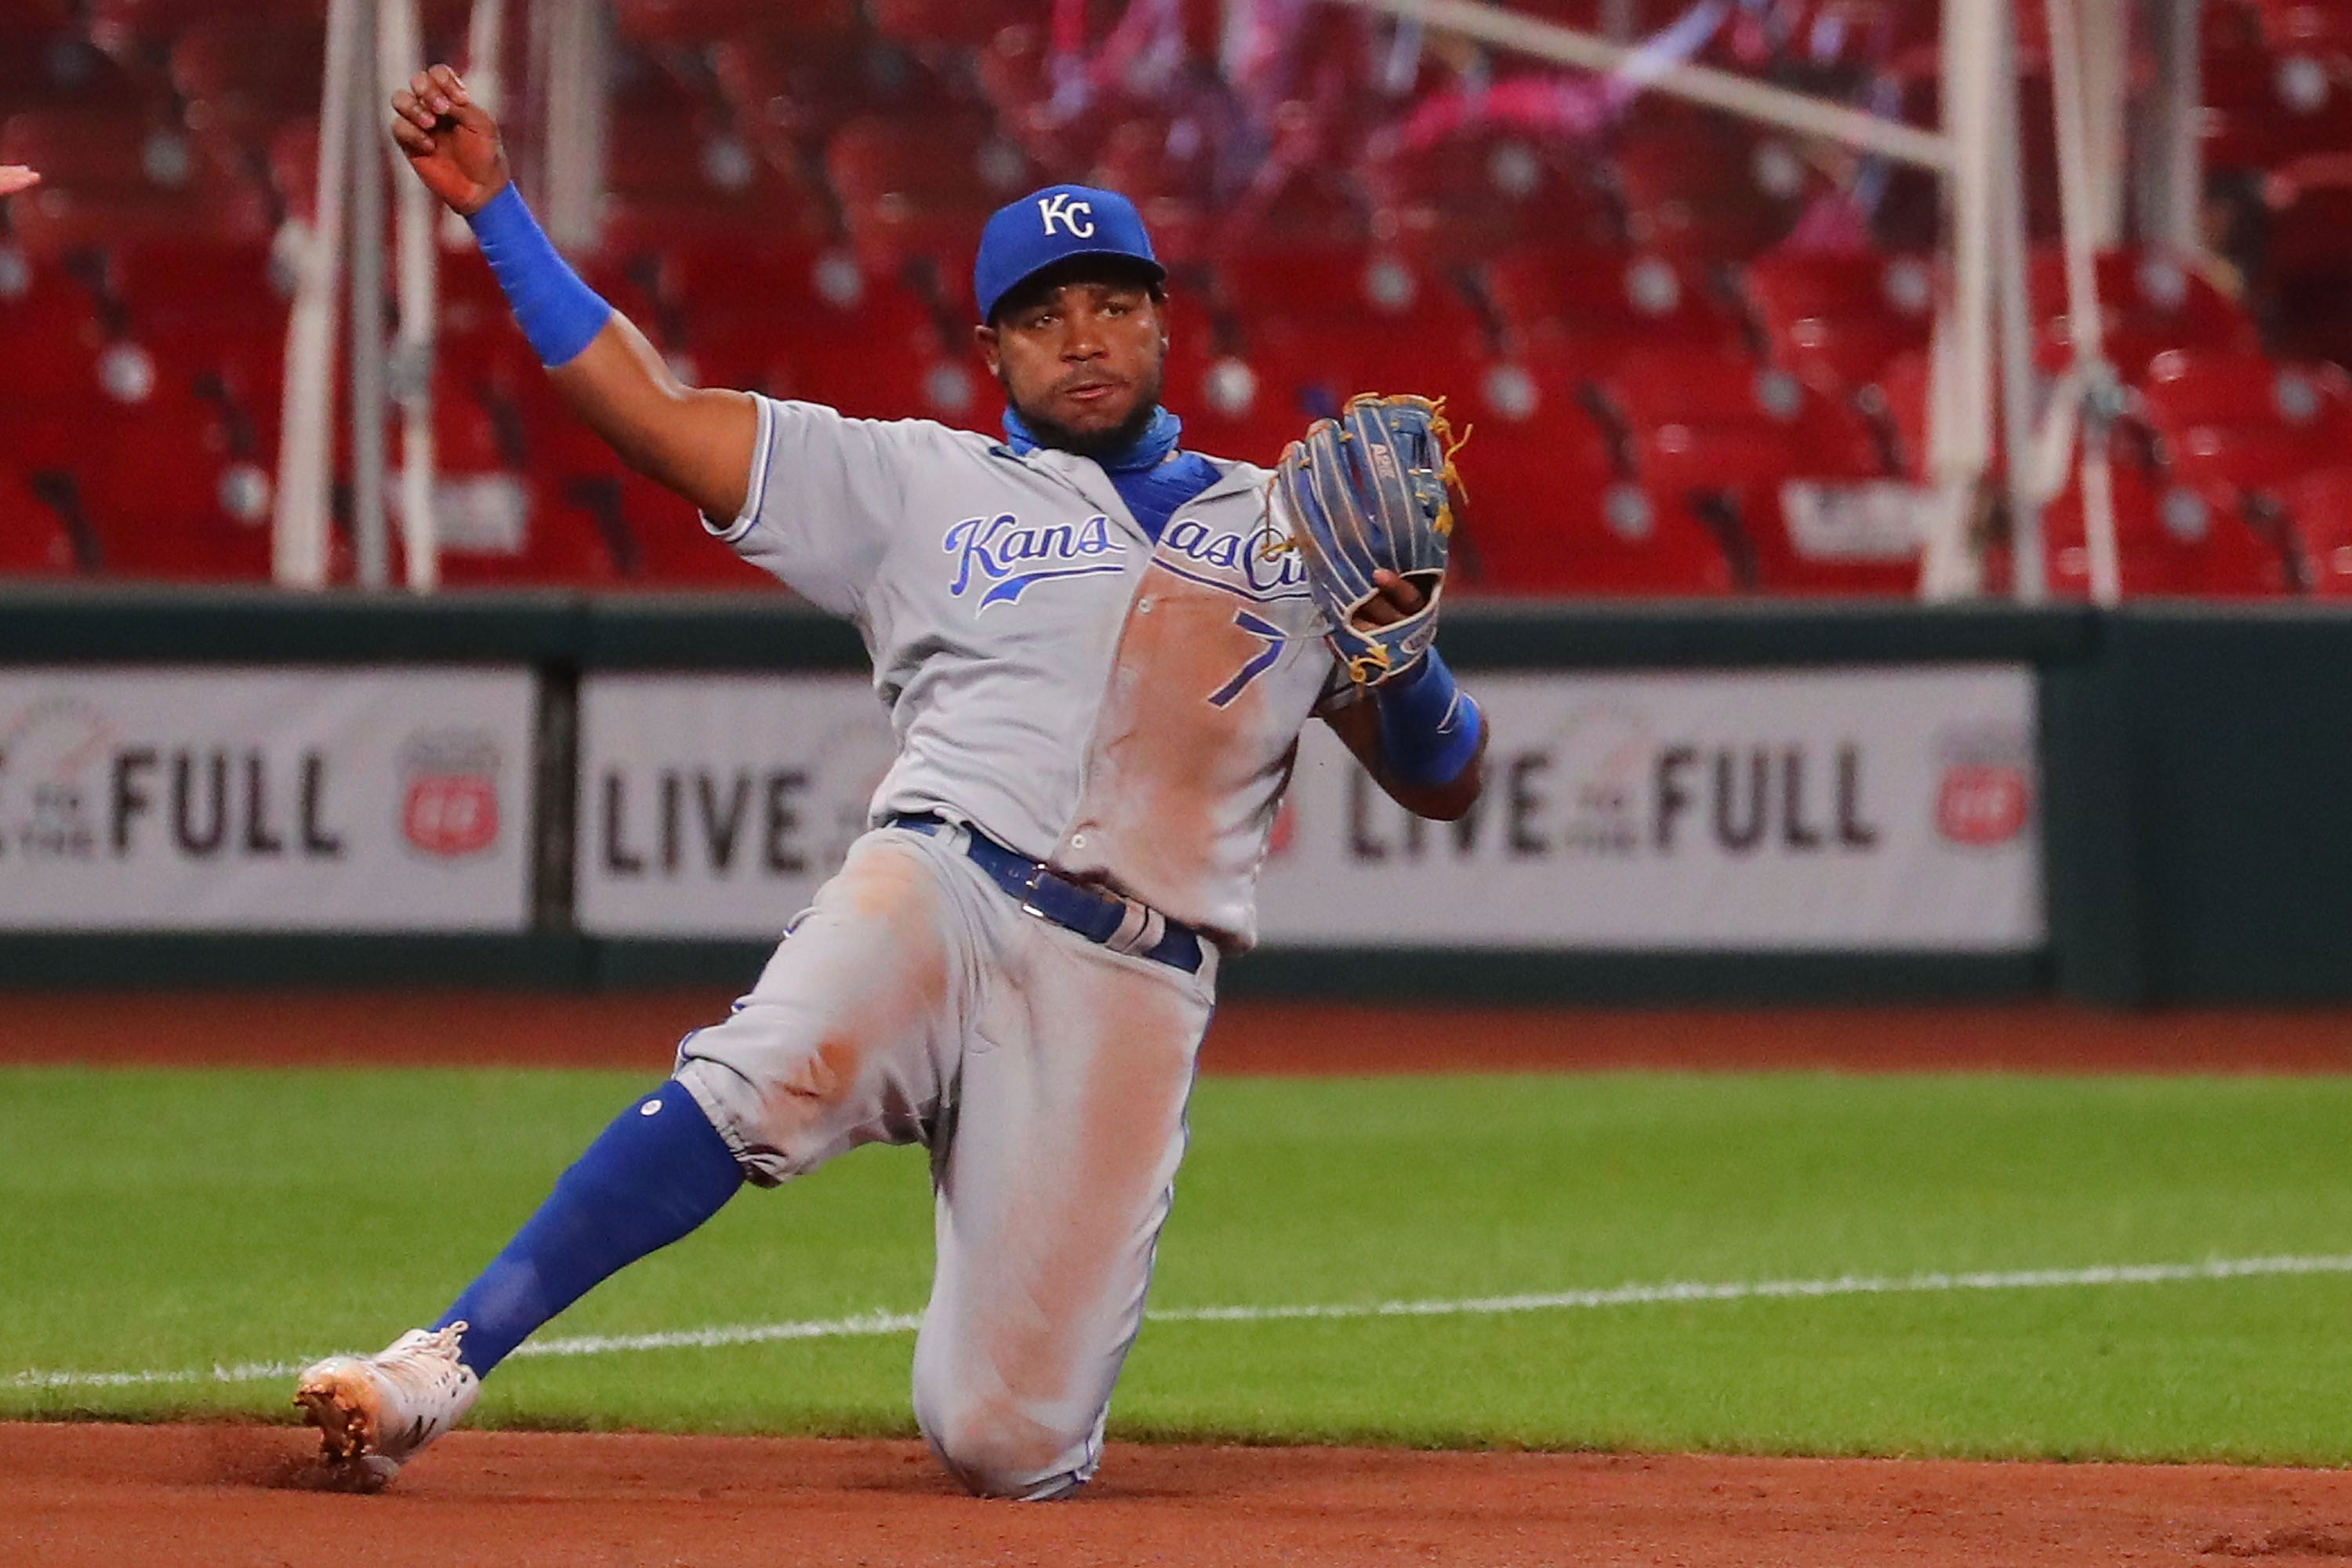 Maikel Franco #7 of the Kansas City Royals reacts after committing a throwing error against the St. Louis Cardinals in the third inning that led to a run scoring in the third inning at Busch Stadium on August 25, 2020 in St Louis, Missouri.